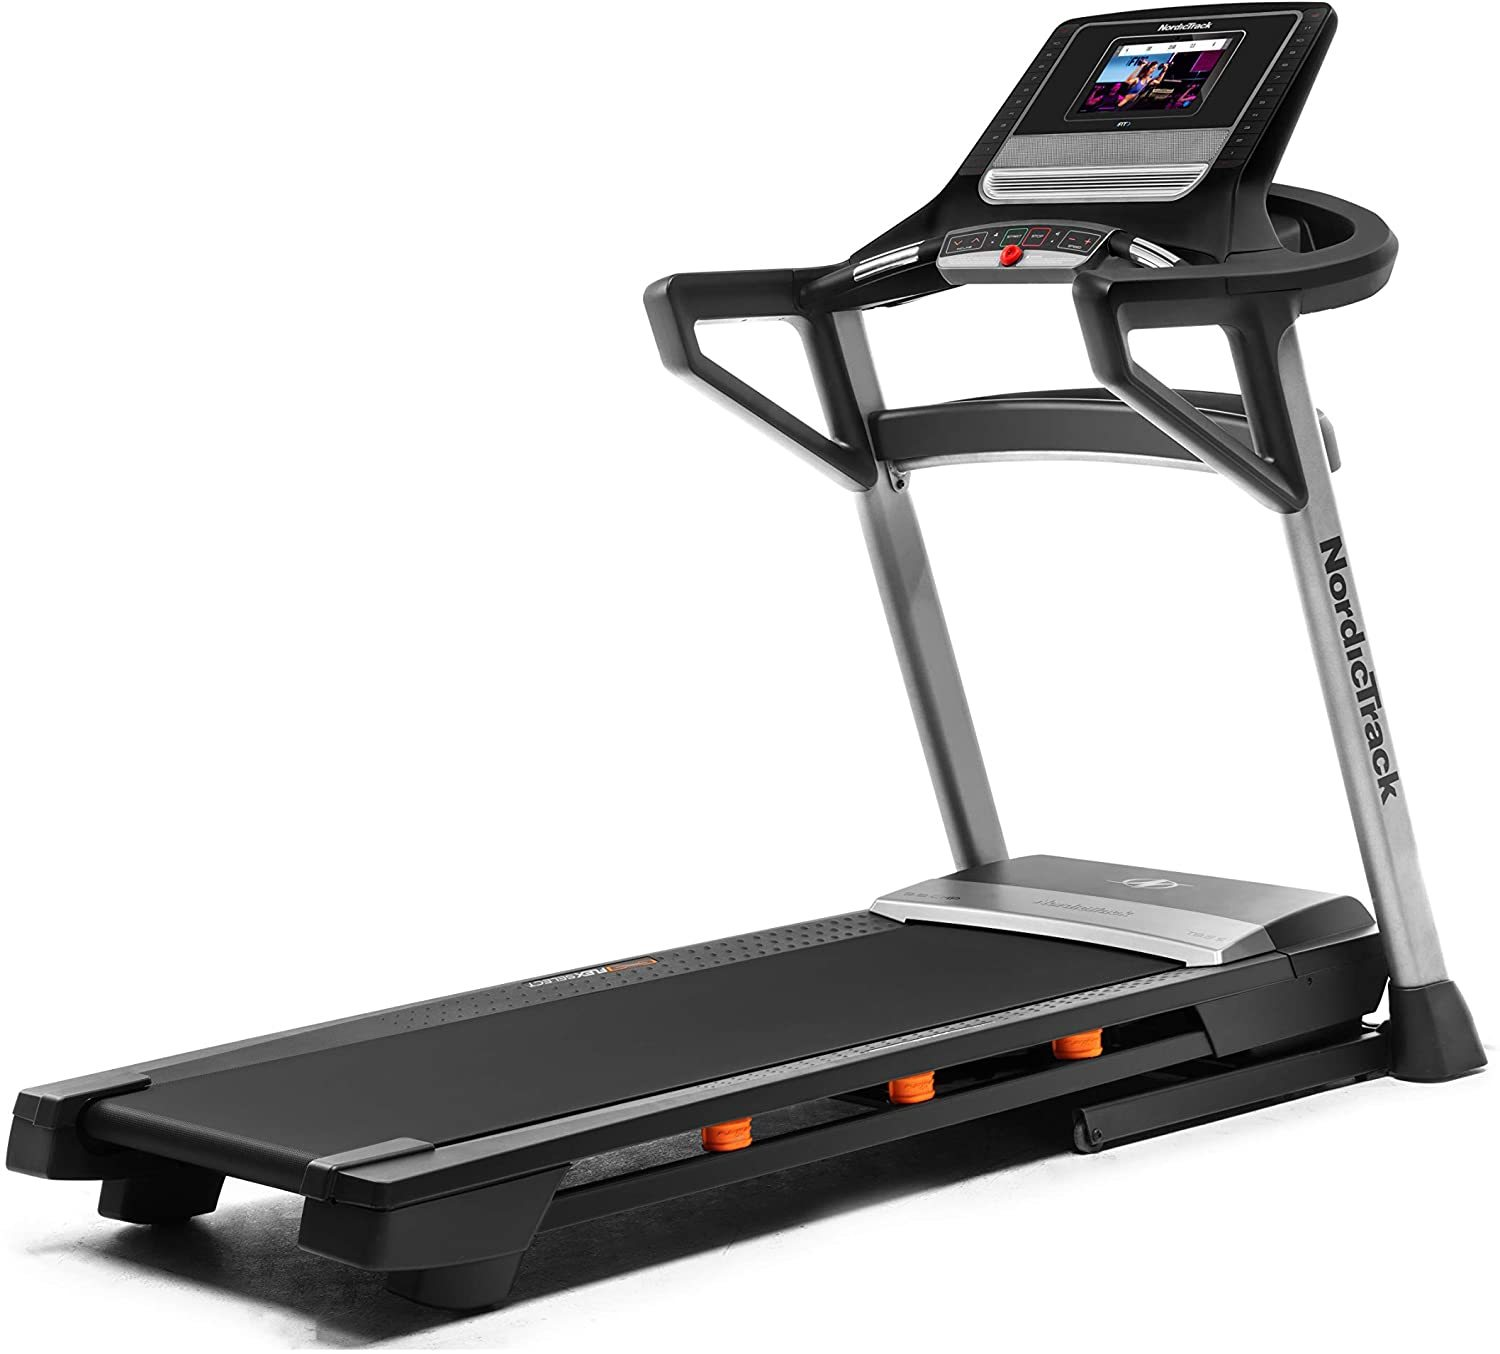 T Series Treadmills (6.5S, 6.5Si, 7.5S, 8.5S, 9.5S Models)